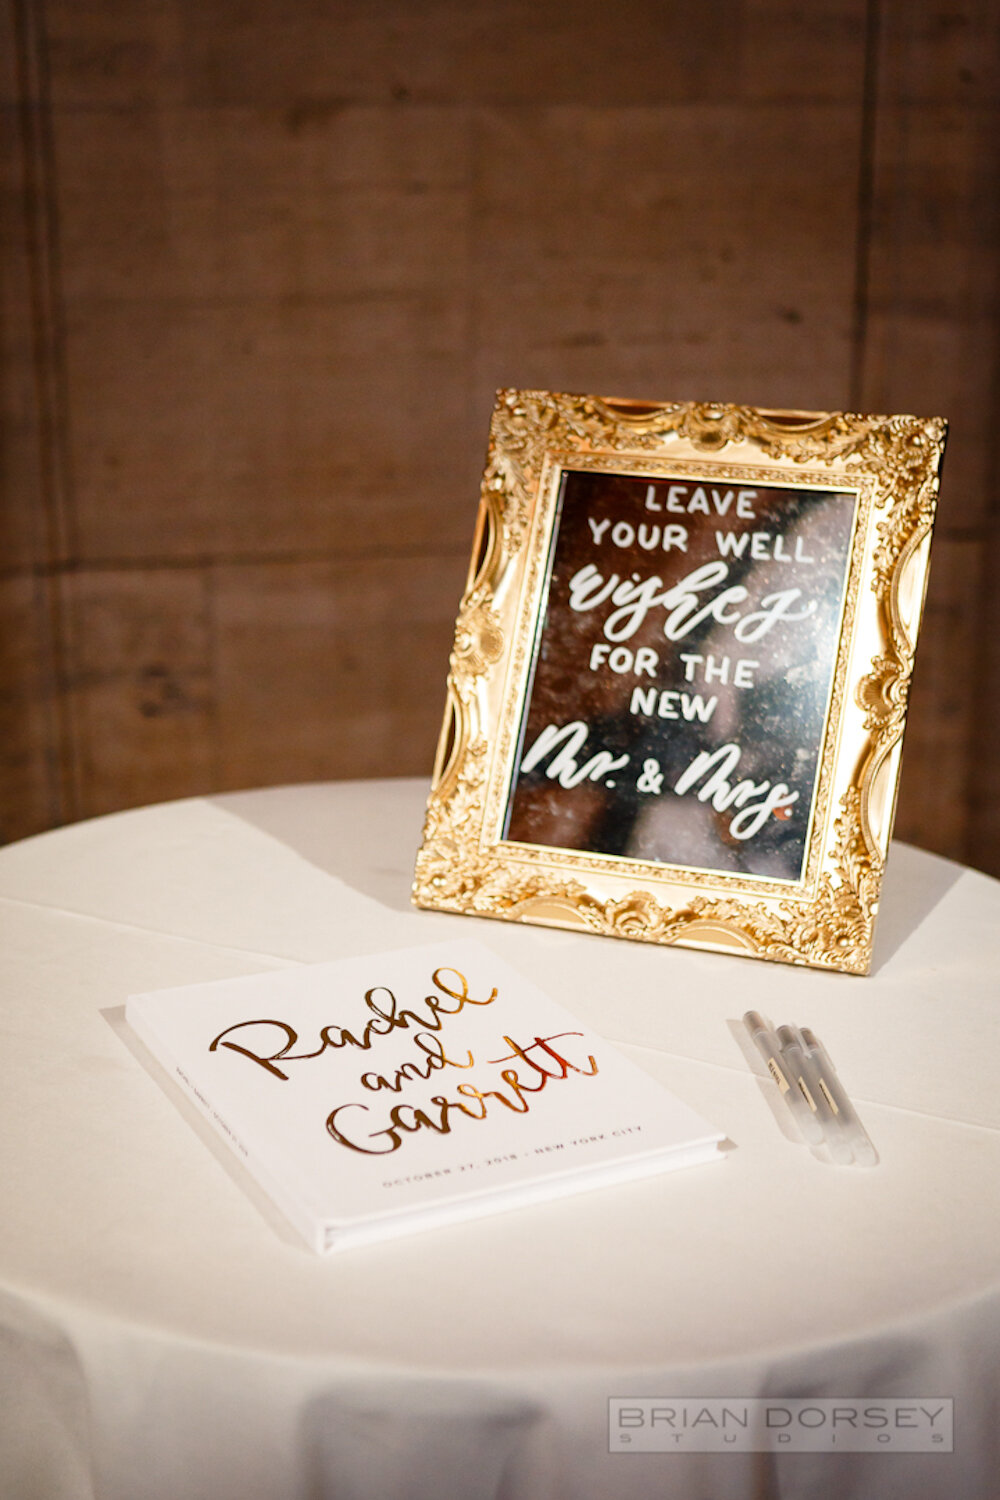 Cipriani wedding guest book and mirror sign